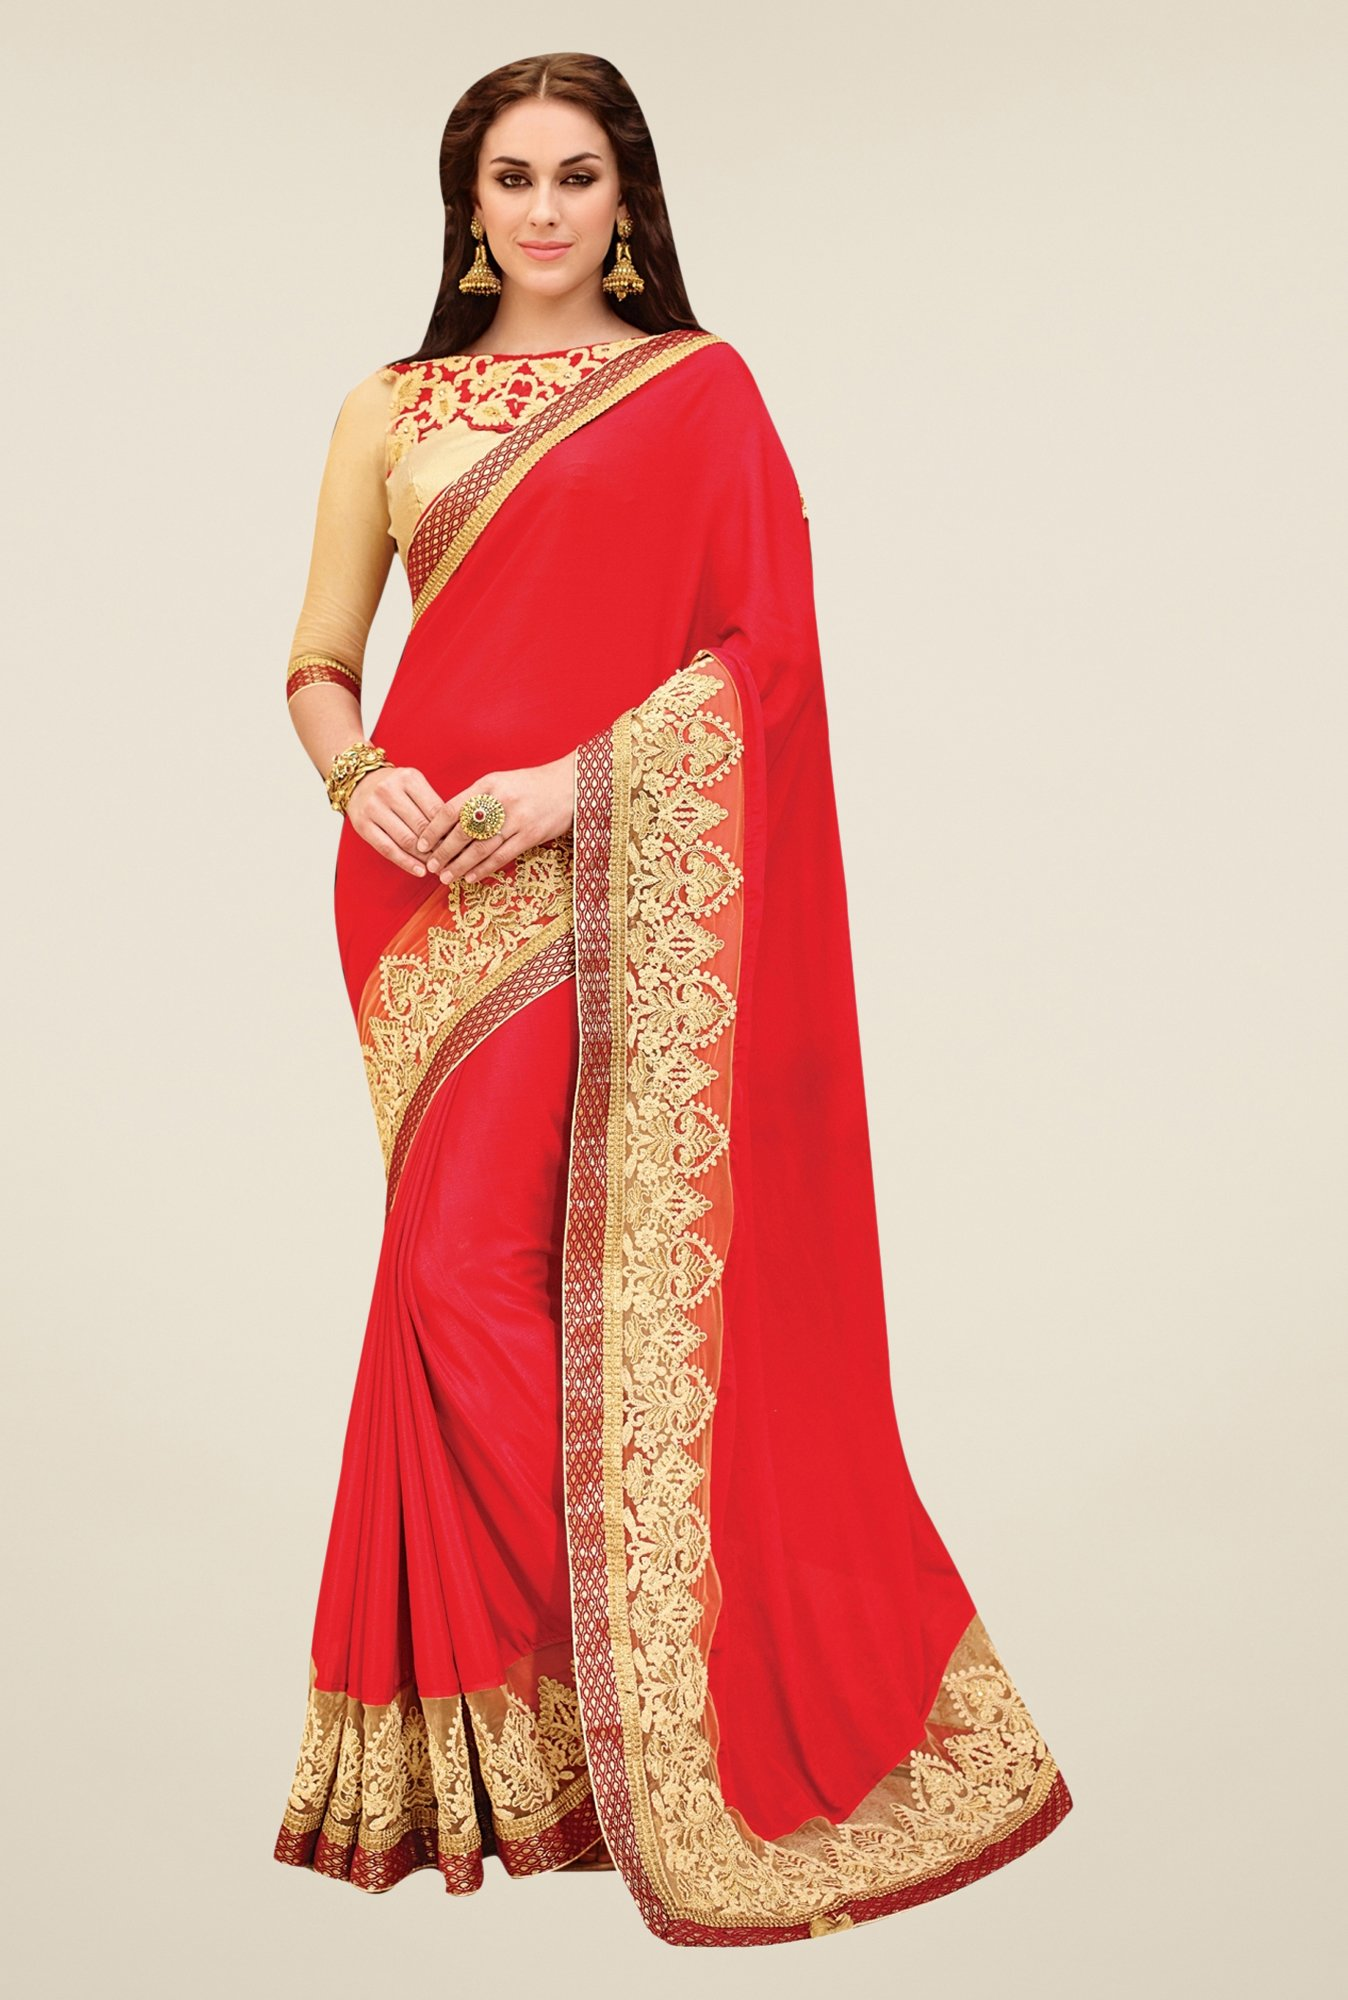 Triveni Coral Embroidered Faux Georgette Art Silk Saree